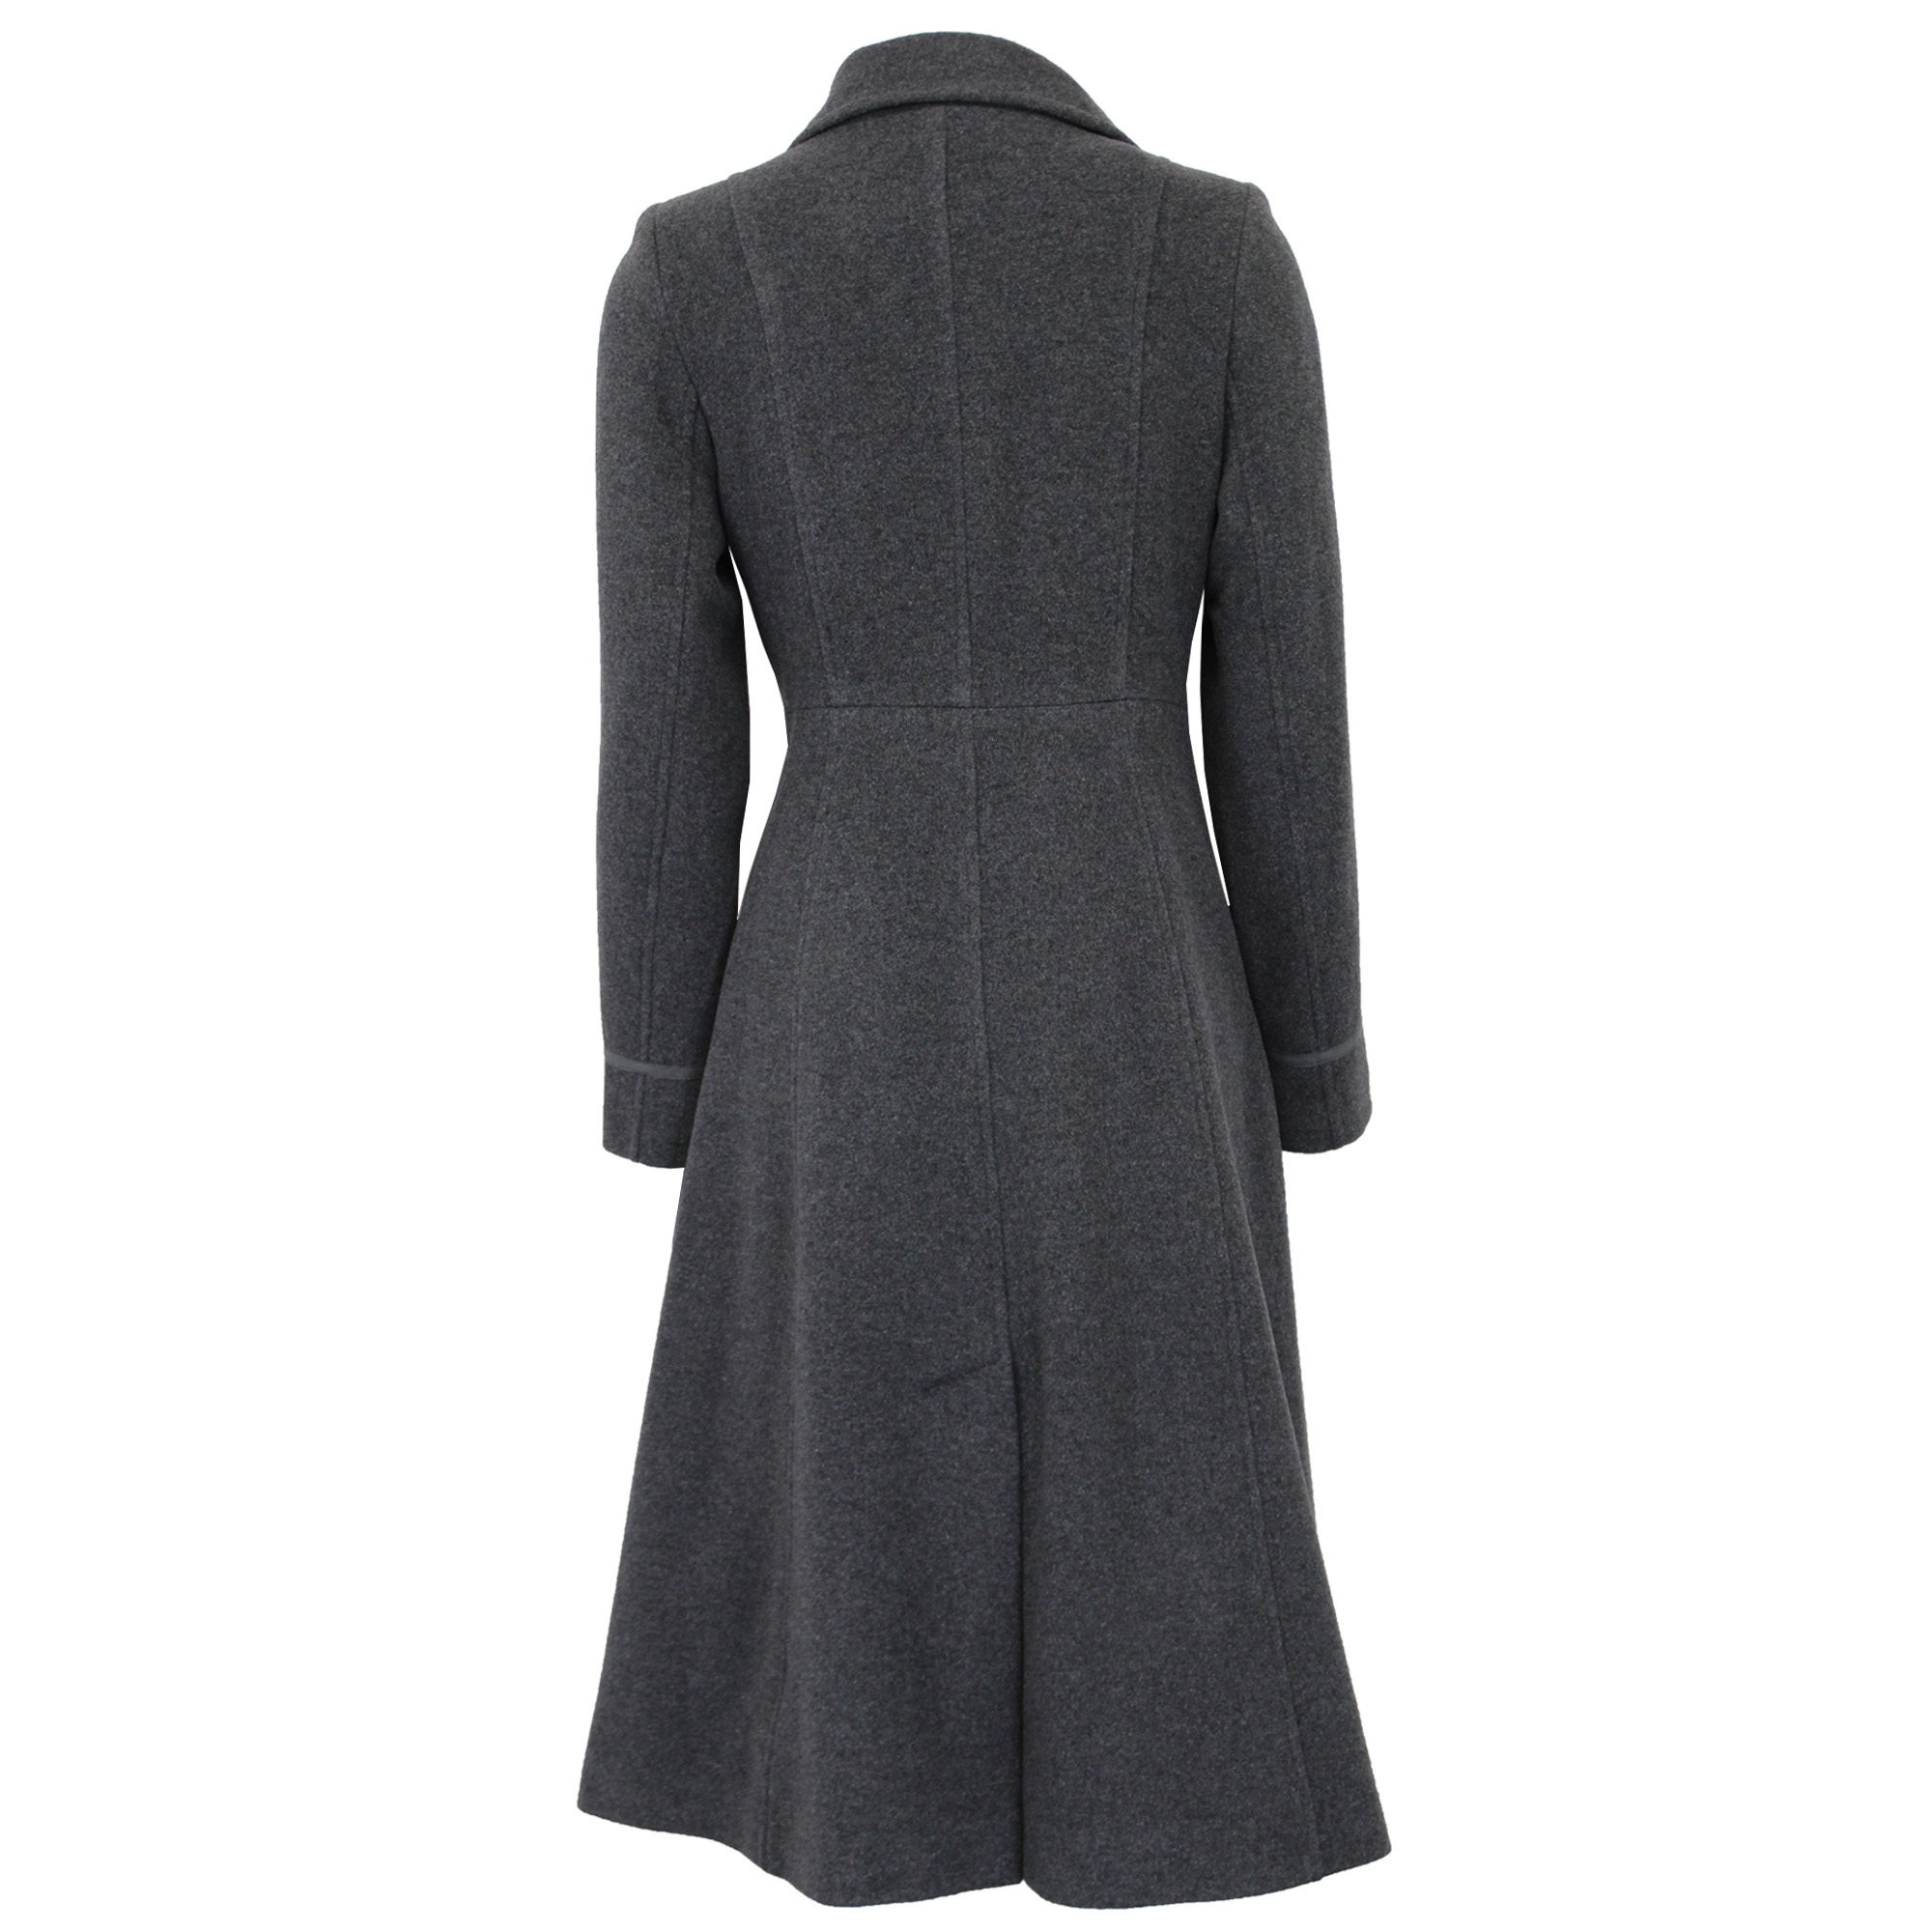 thumbnail 6 - Ladies-Wool-Cashmere-Coat-Womens-Jacket-Outerwear-Trench-Overcoat-Winter-Warm